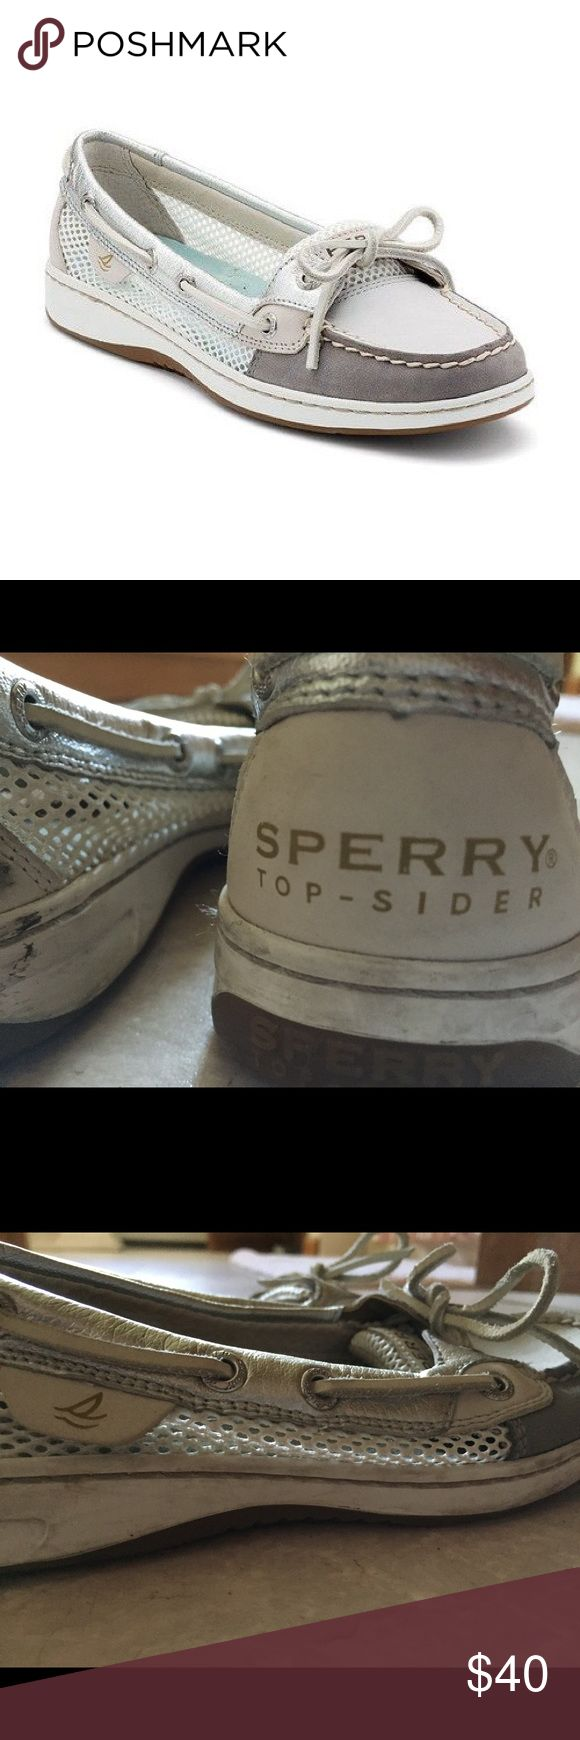 Women's Sperry Angelfish Grey with Open Mesh Gently worn, but still in great condition Sperry Top-Sider Shoes